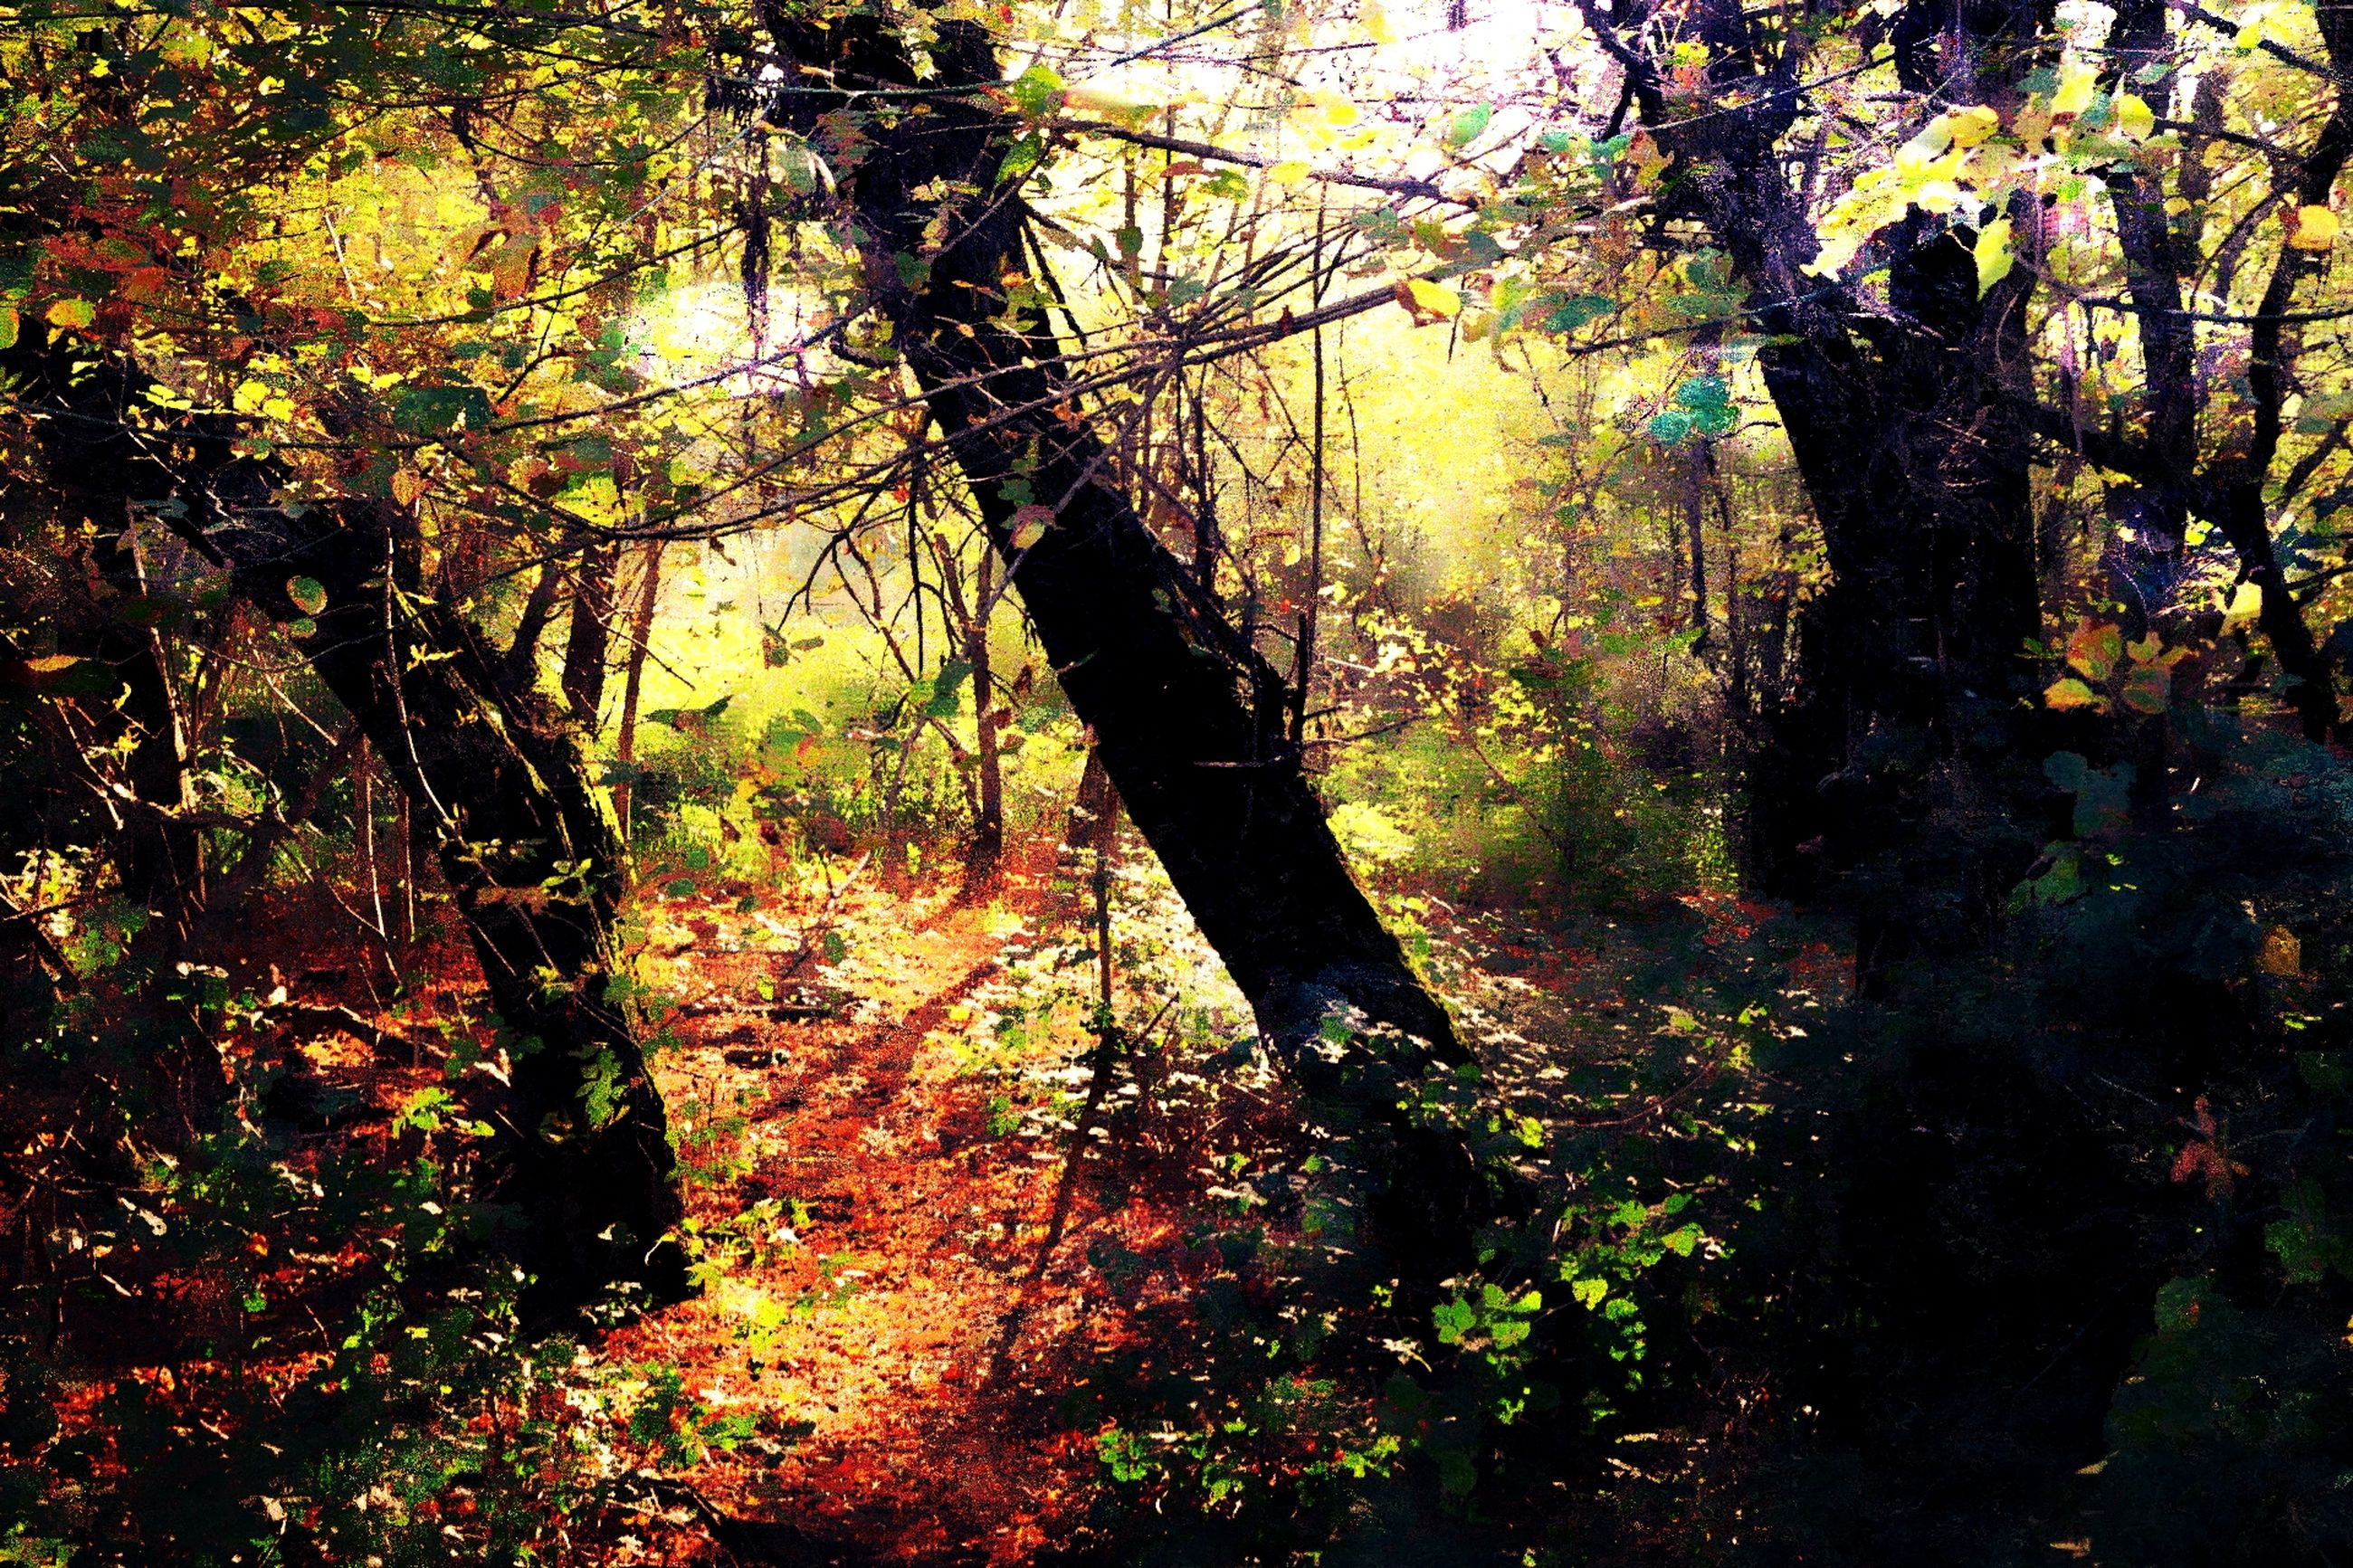 tree, nature, forest, branch, growth, beauty in nature, tree trunk, tranquil scene, tranquility, change, day, leaf, scenics, autumn, no people, outdoors